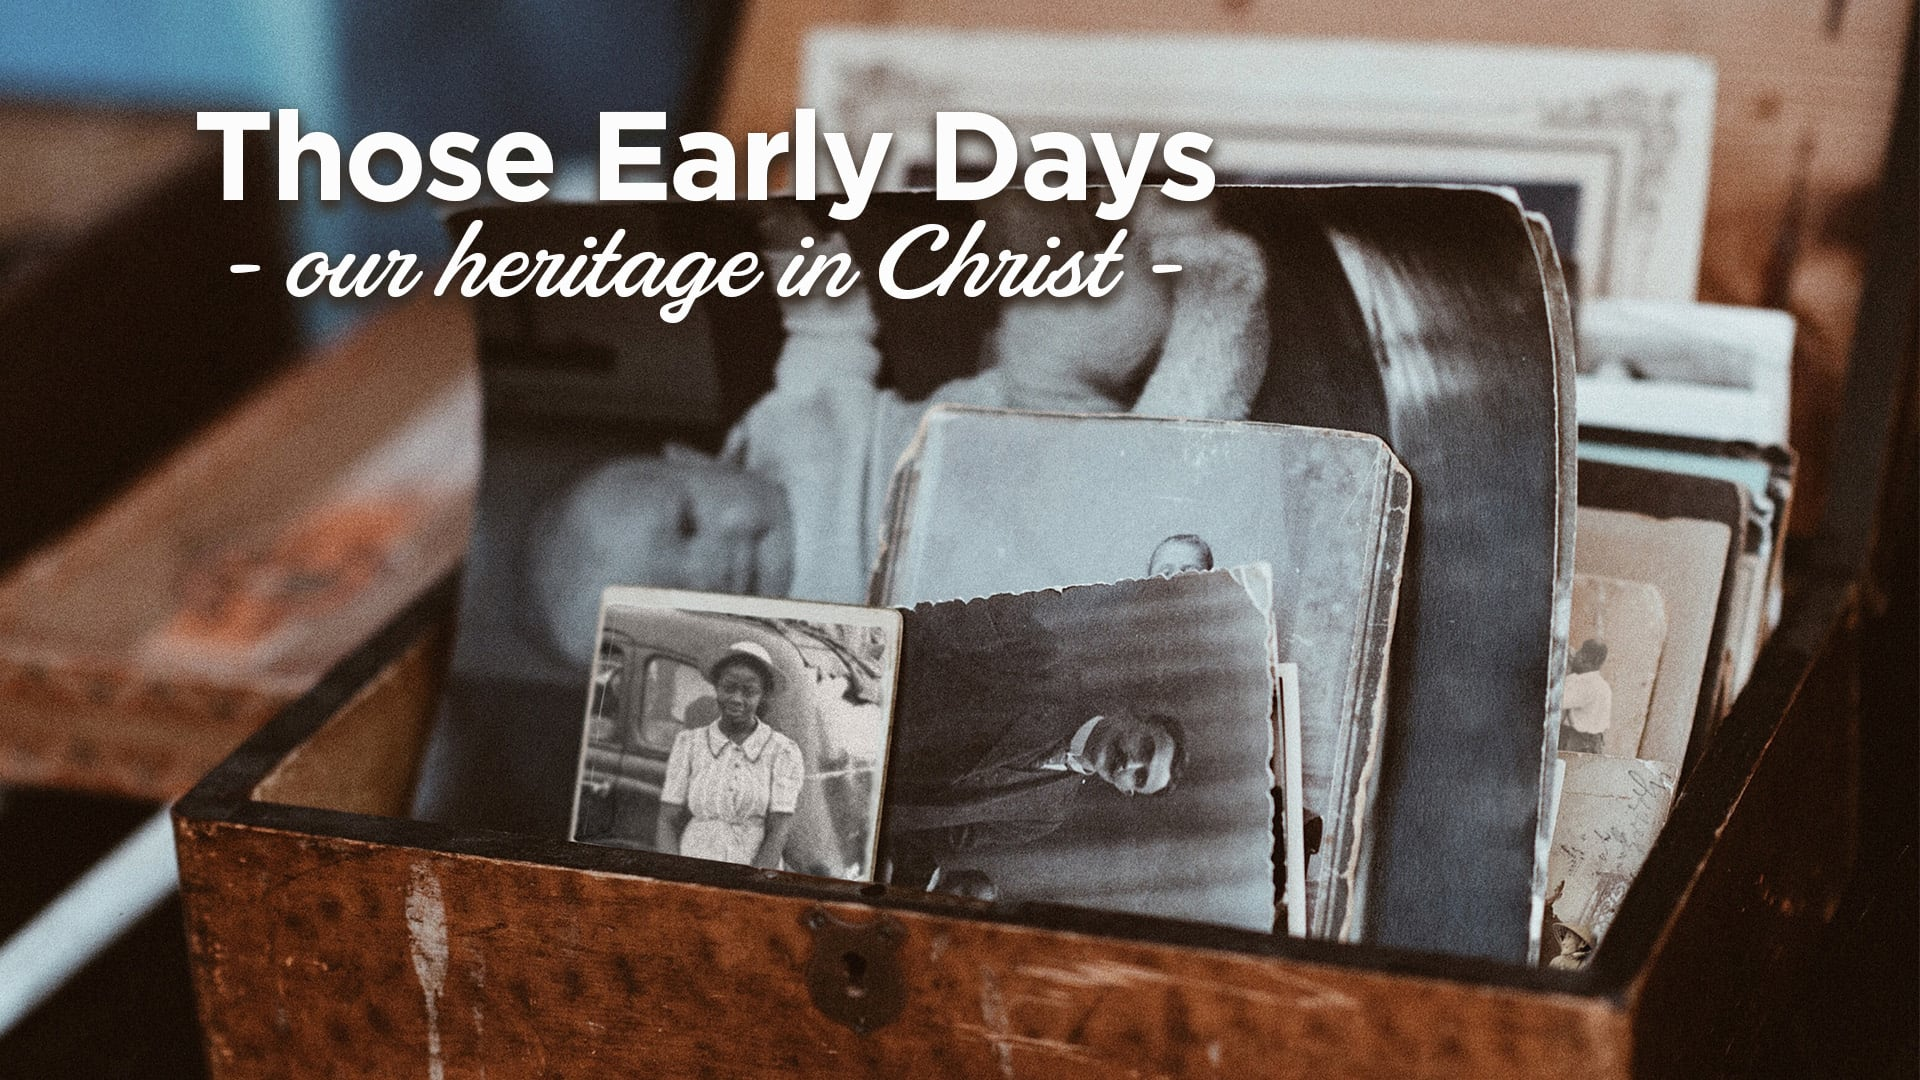 Those Early Days - Purpose